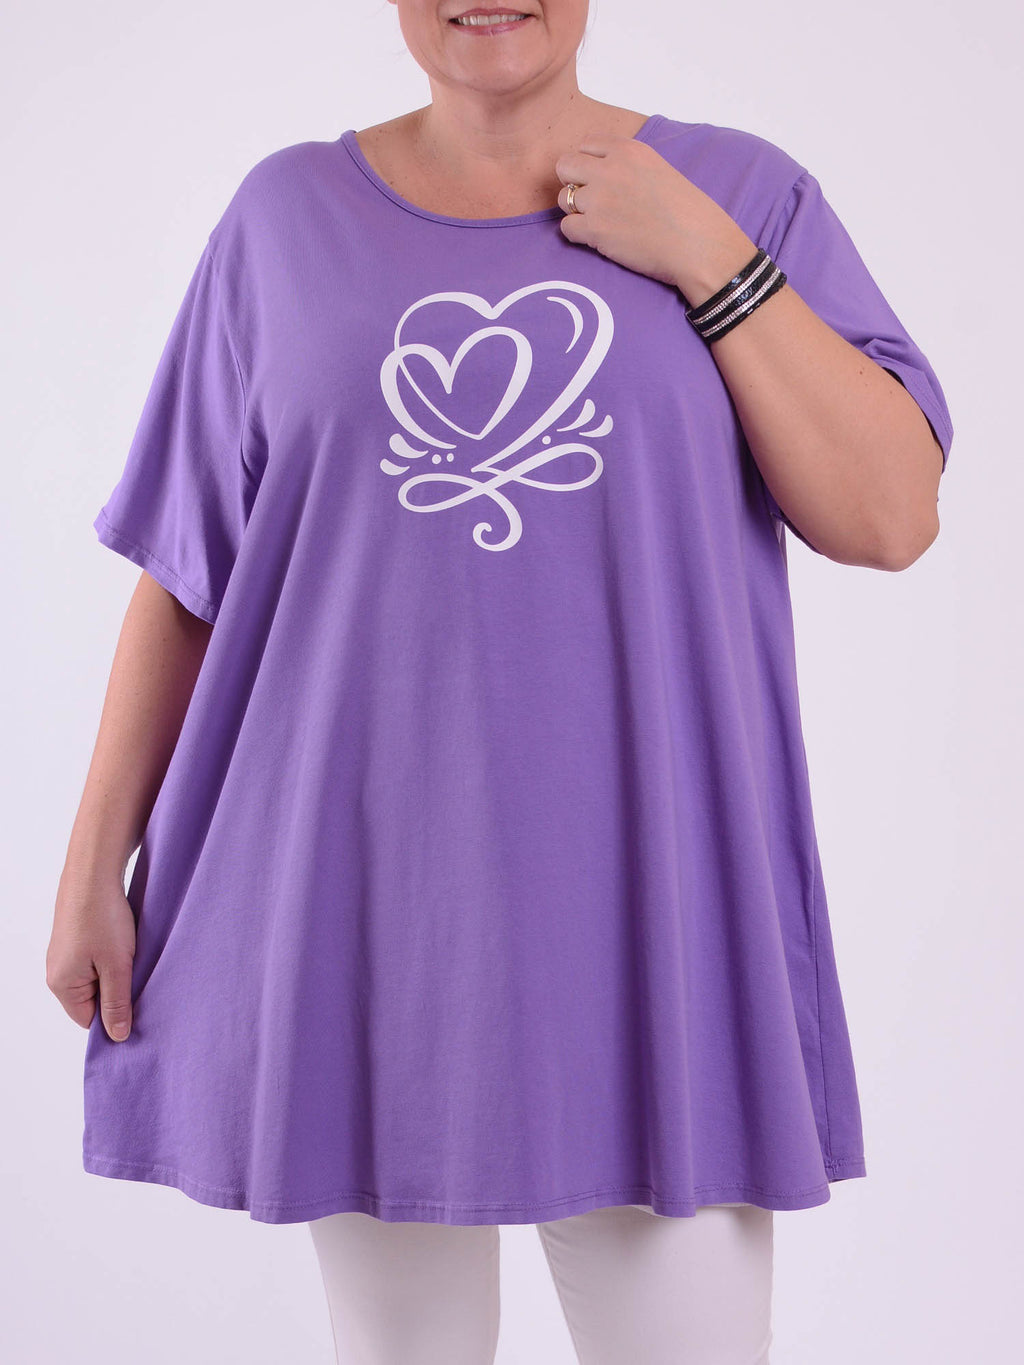 Basic Cotton Swing T Shirt - Round Neck 10516 HEART PRINT - Pure Plus Clothing